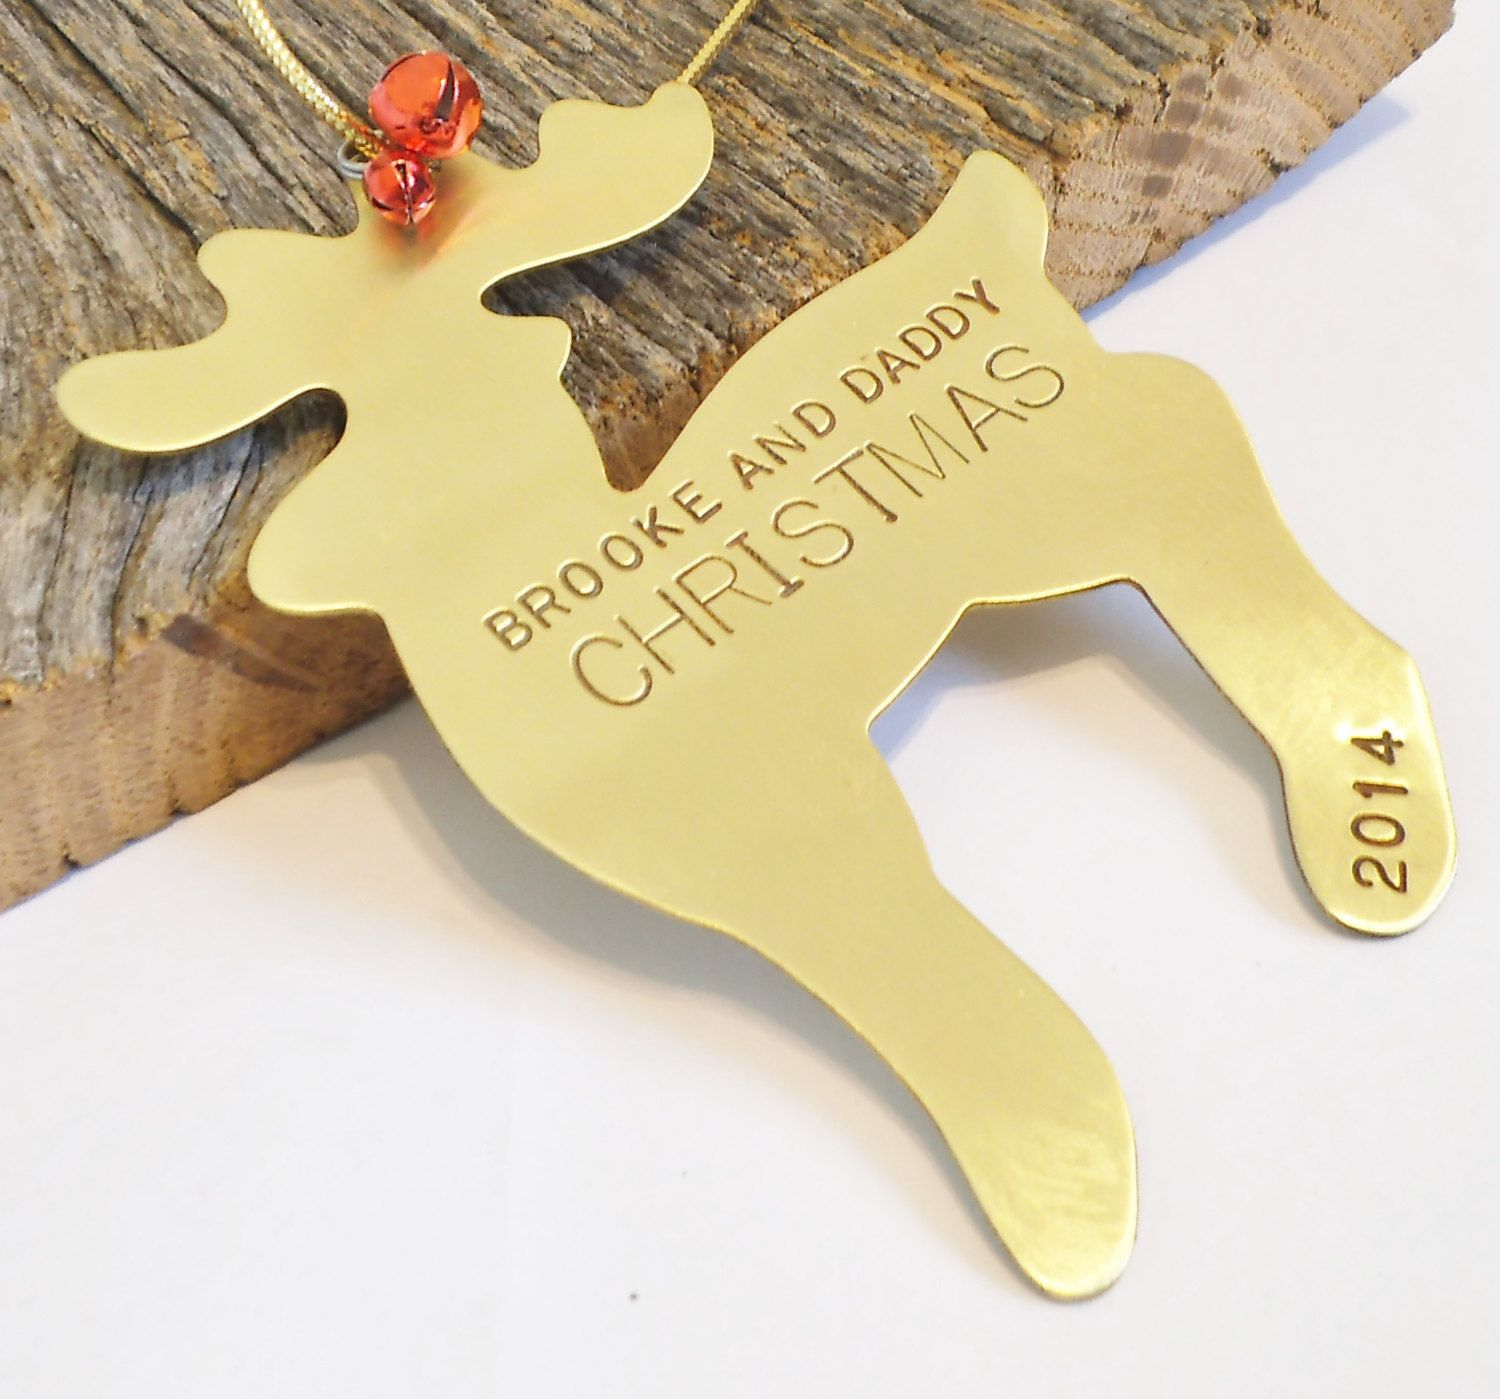 Dad christmas ornament - Christmas Ornament For Parent And Child Reindeer Ornament Personalized Our First Christmas Single Mom Dad Mommy And Me Daddy Gift Only Child